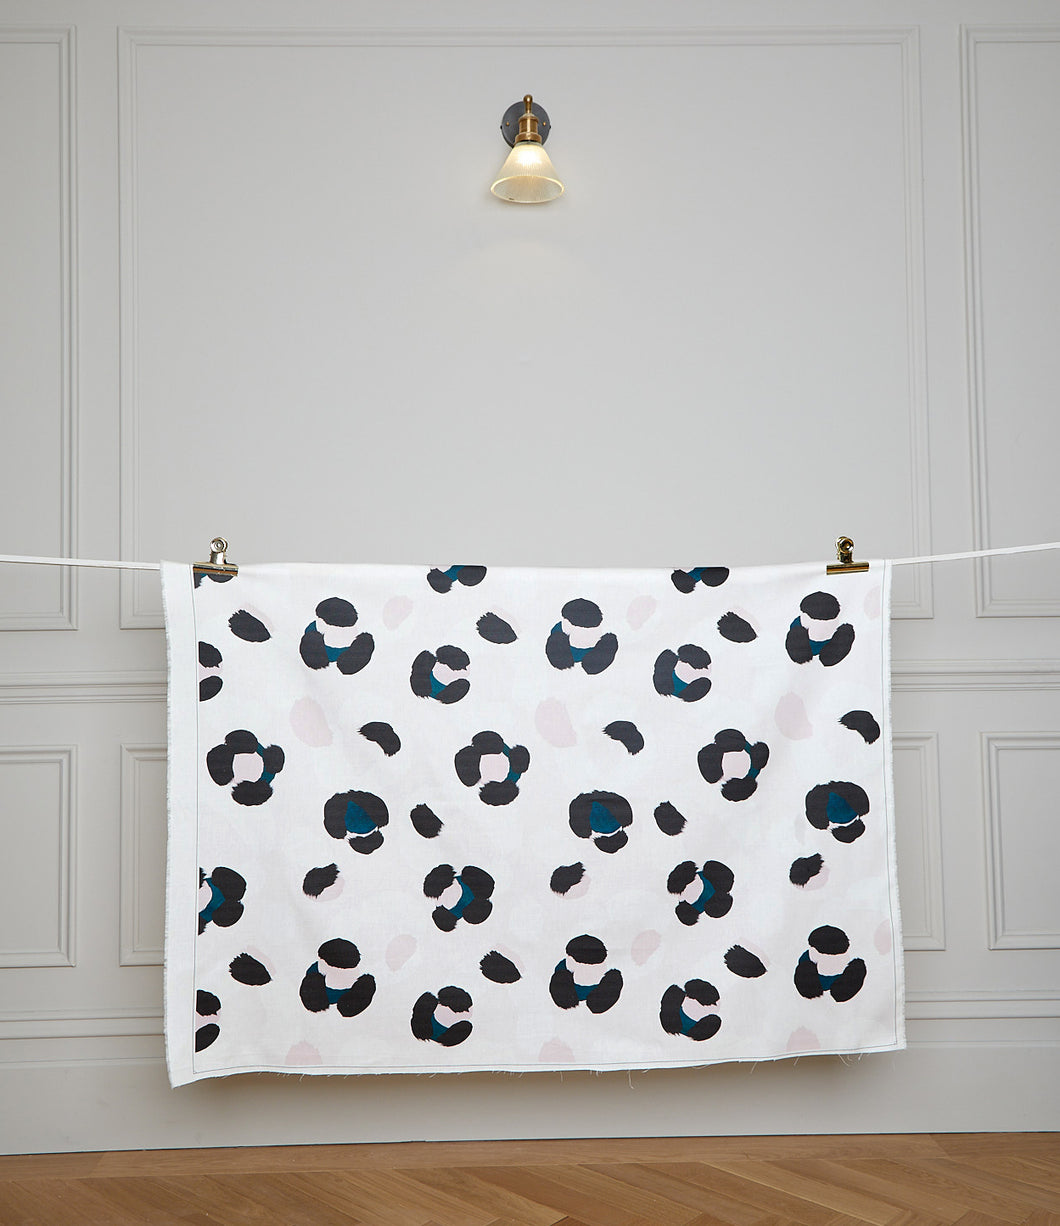 Large Leopard Splodge Teal Fabric